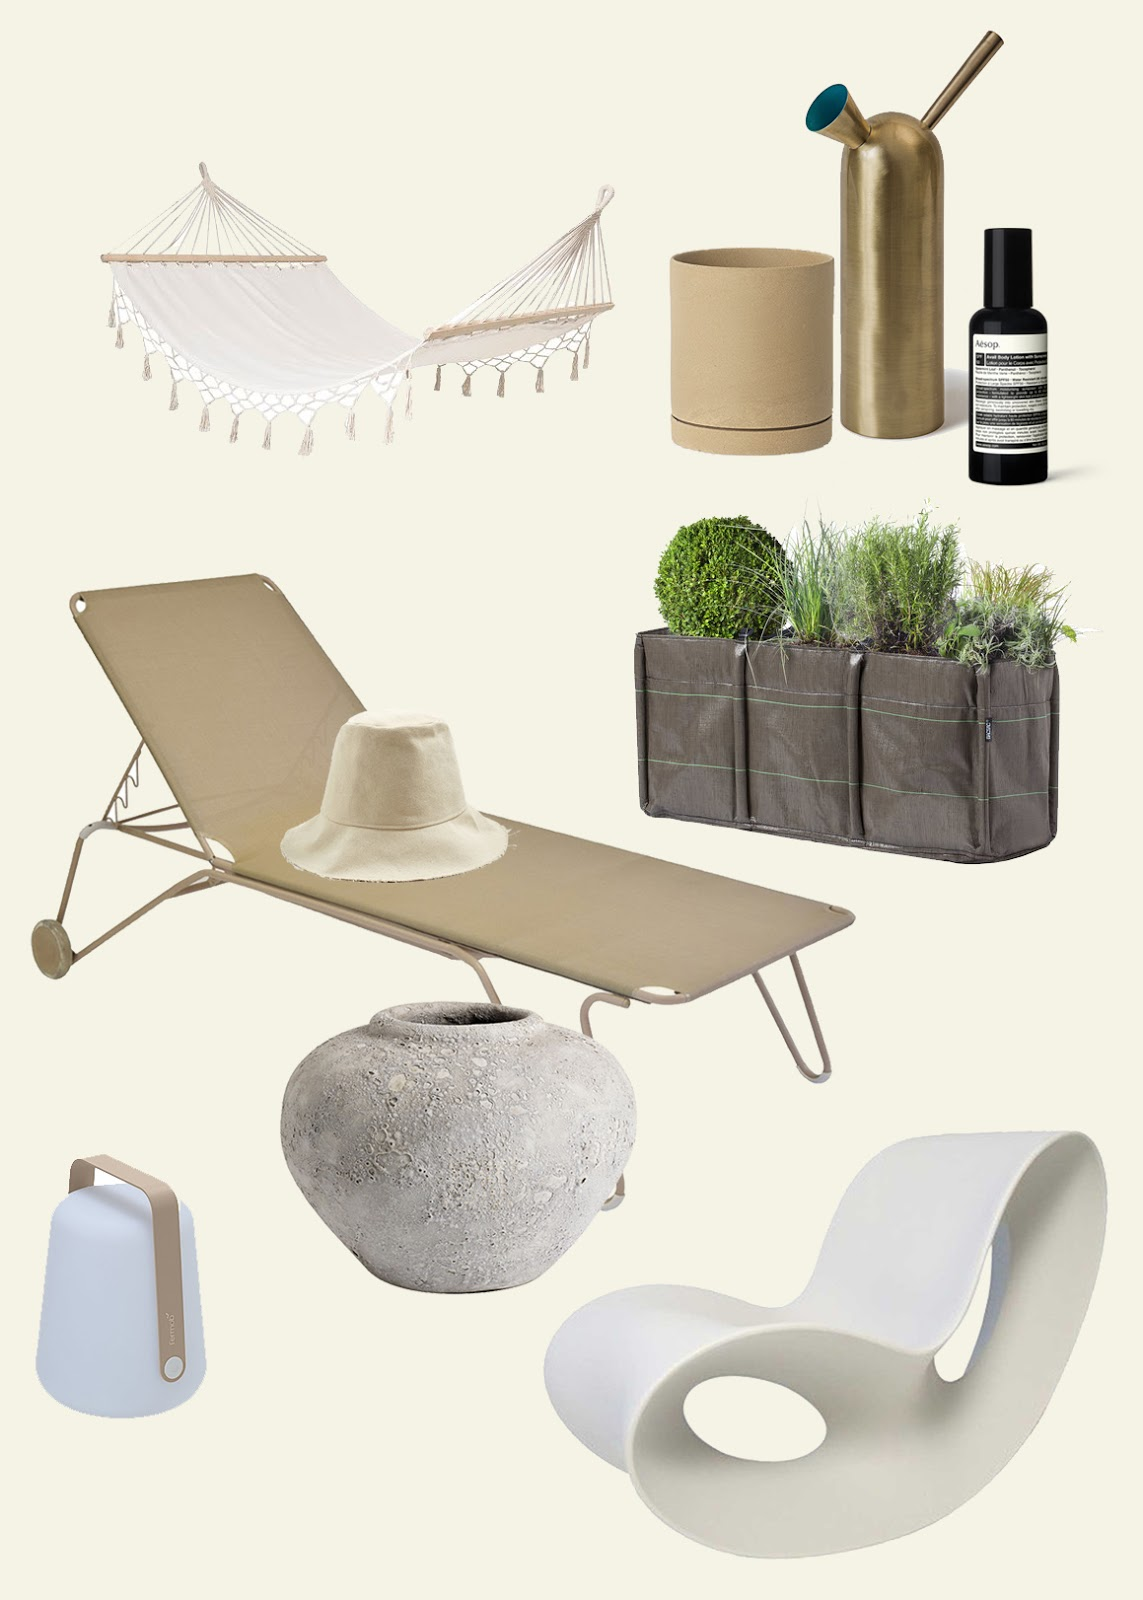 10 pieces to create a beautiful outdoor space